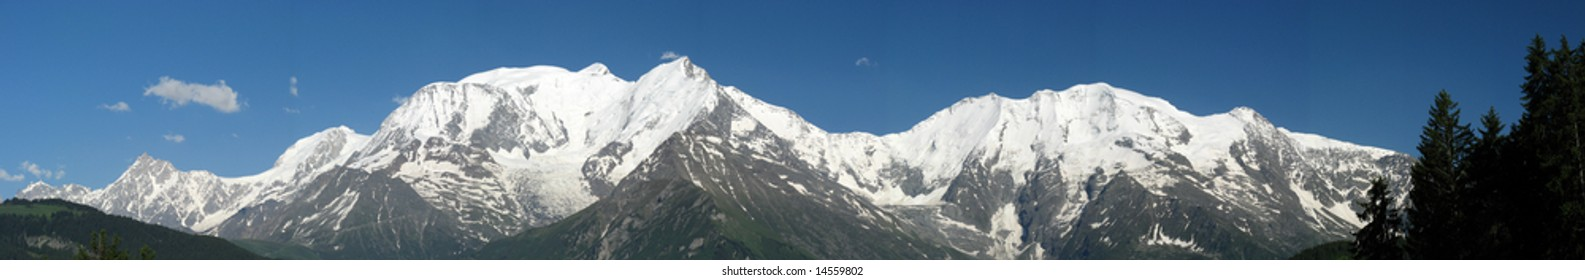 Mont Blanc from the Bettex (Saint Gervais, France)